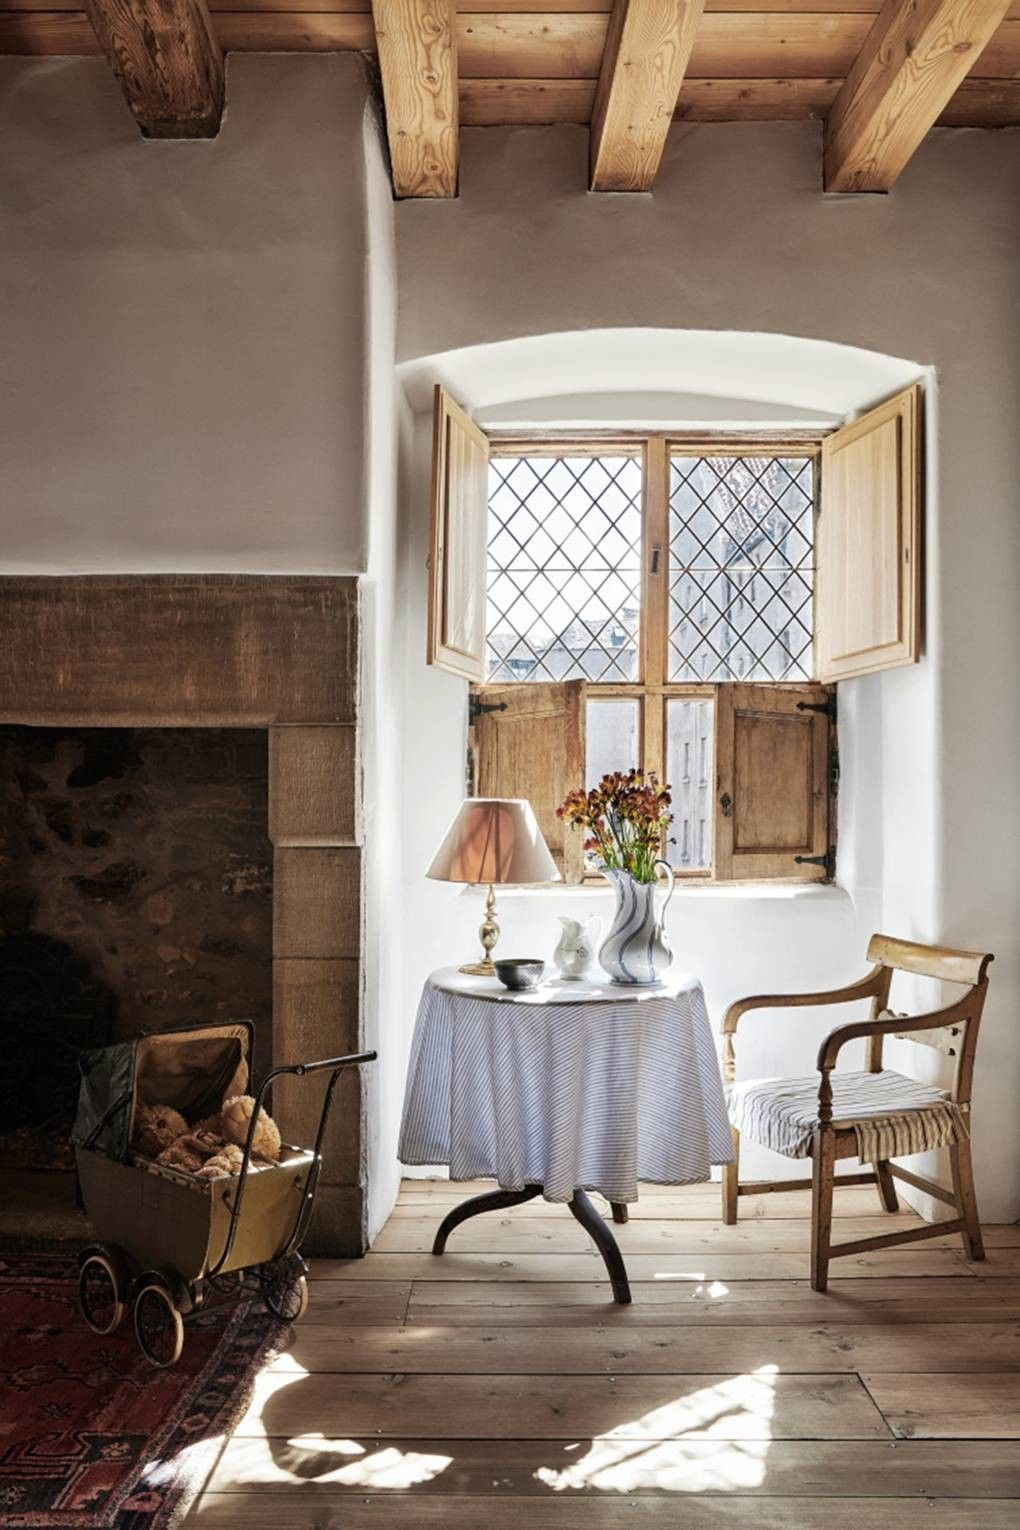 Pin By Lacey Larson On Mansion 3 Thrumpton Hall And Others In 2020 Kitchen Fireplace House Restoration Rustic House